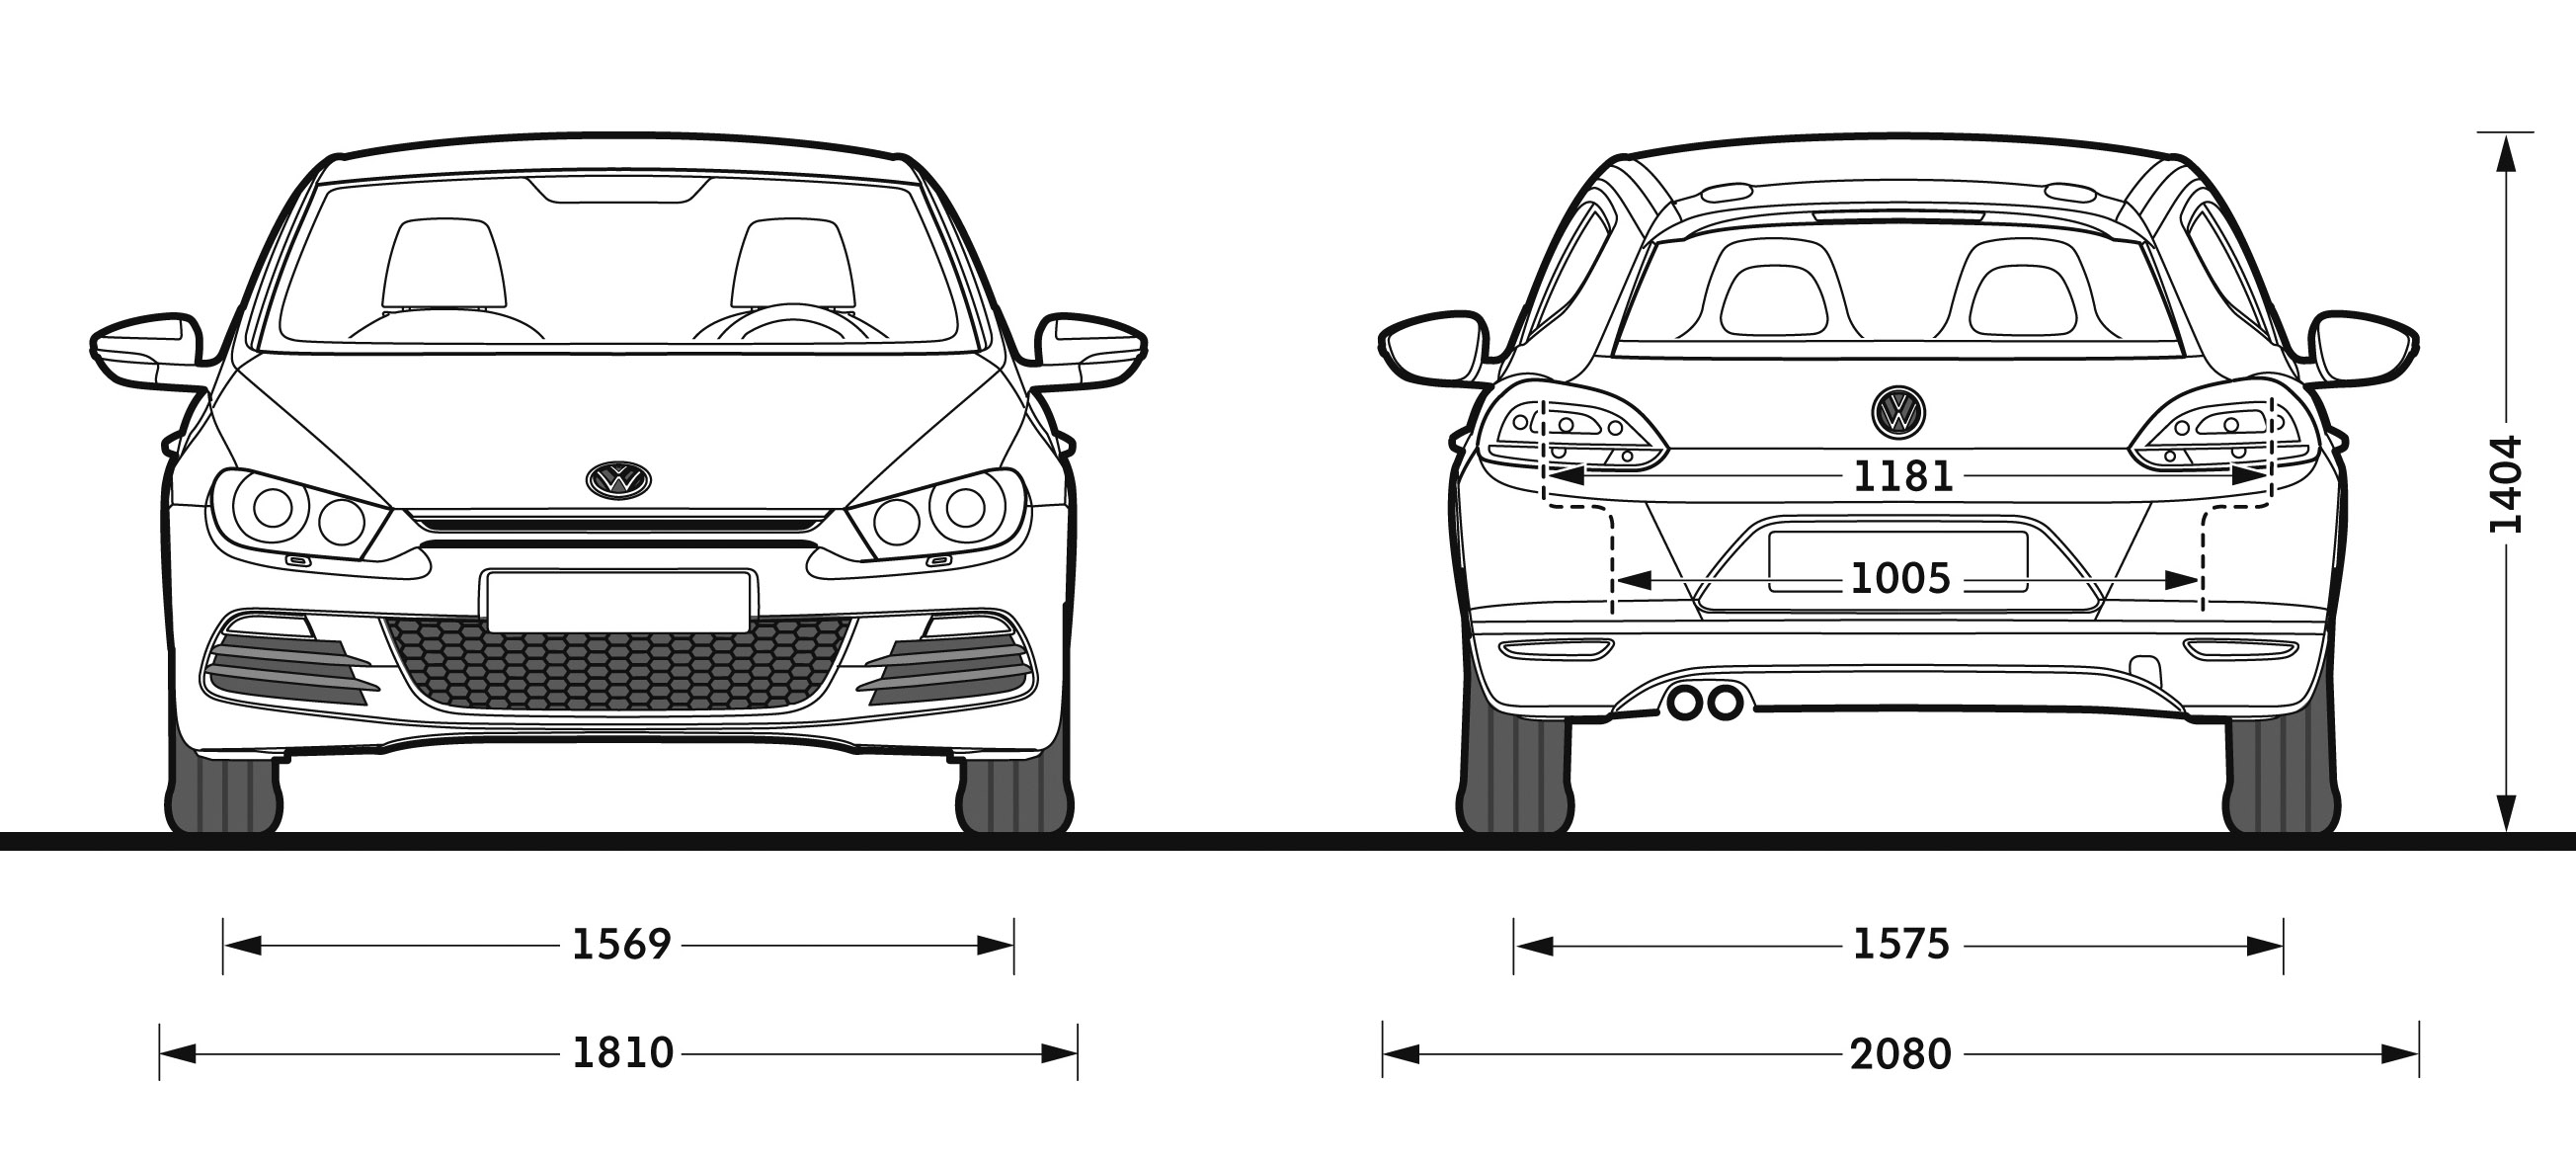 Showimage in addition Car line art also Smart Forfour 2014 in addition Car Design Drawings likewise Daftar Harga Mobil Mitsubishi Terkini 2016. on 2009 smart fortwo dimensions